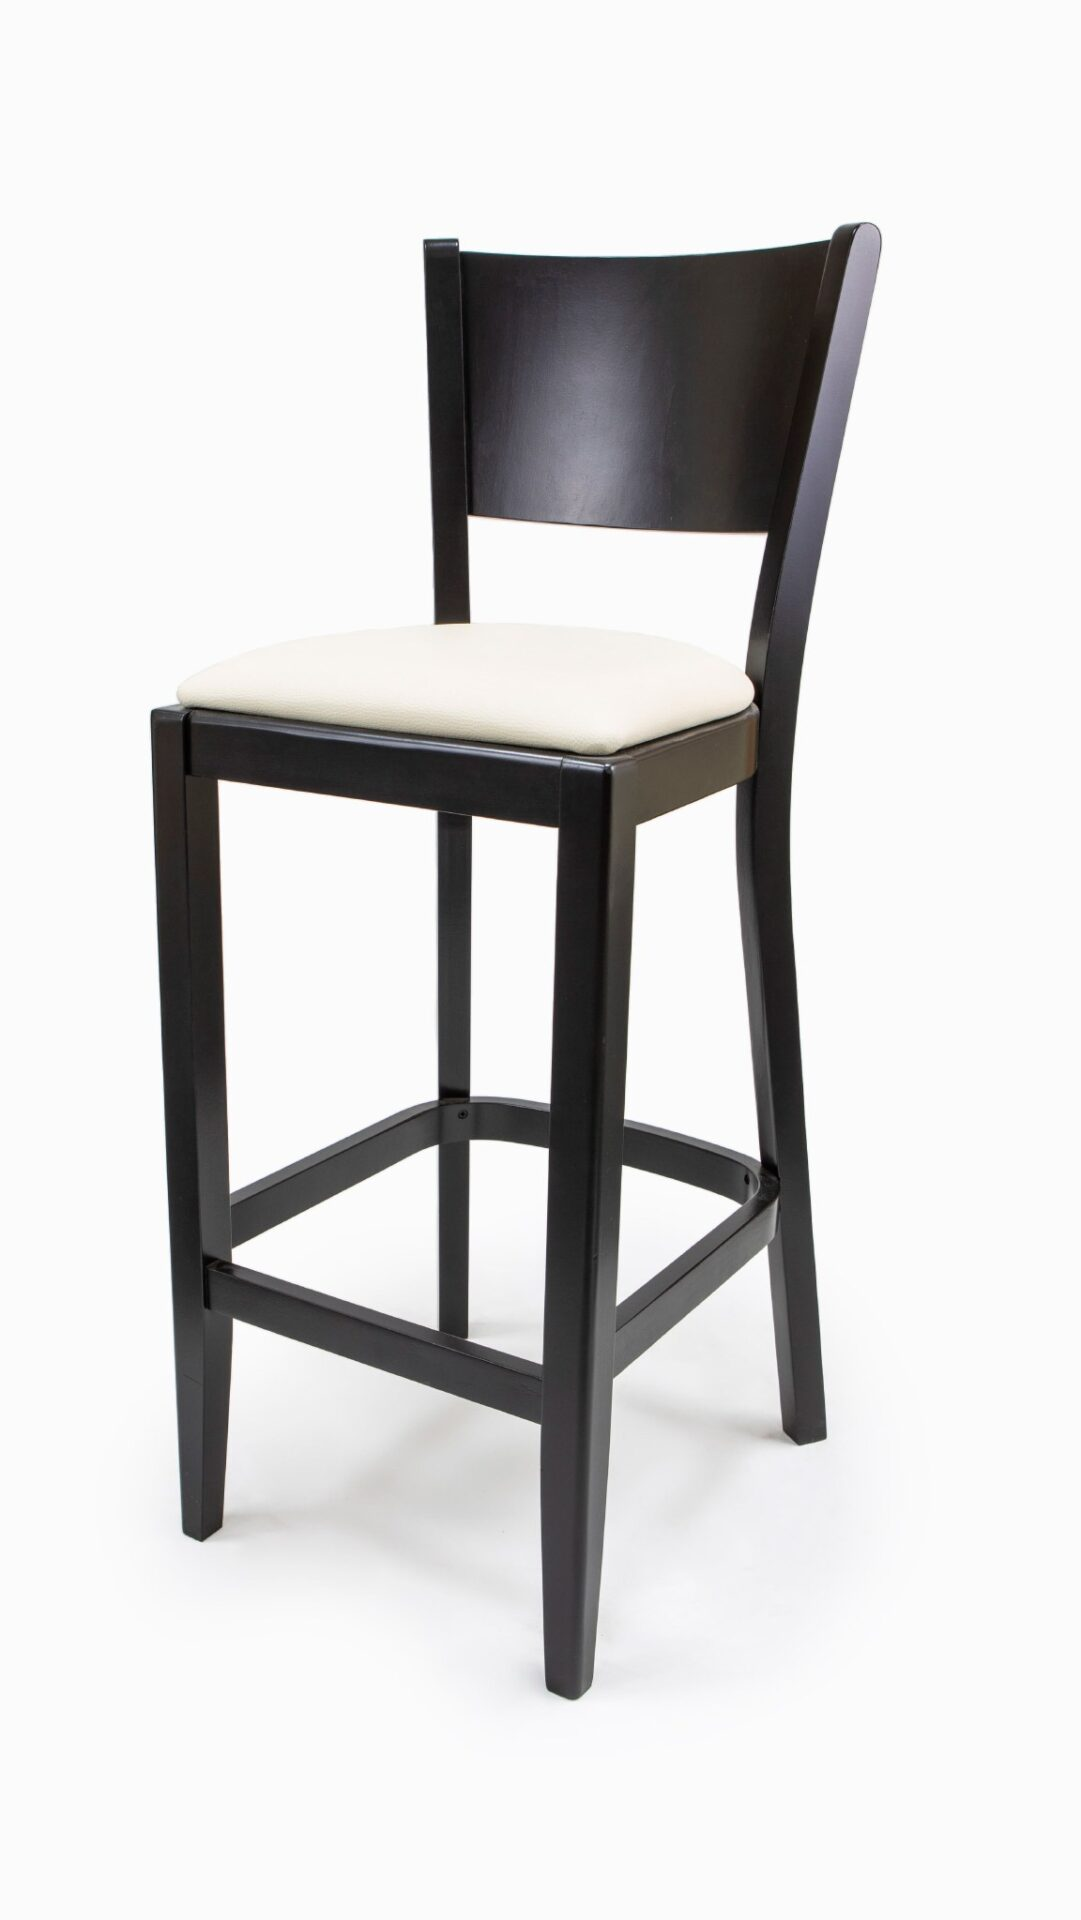 Solid Wood bar stool made of Beech - 1301B